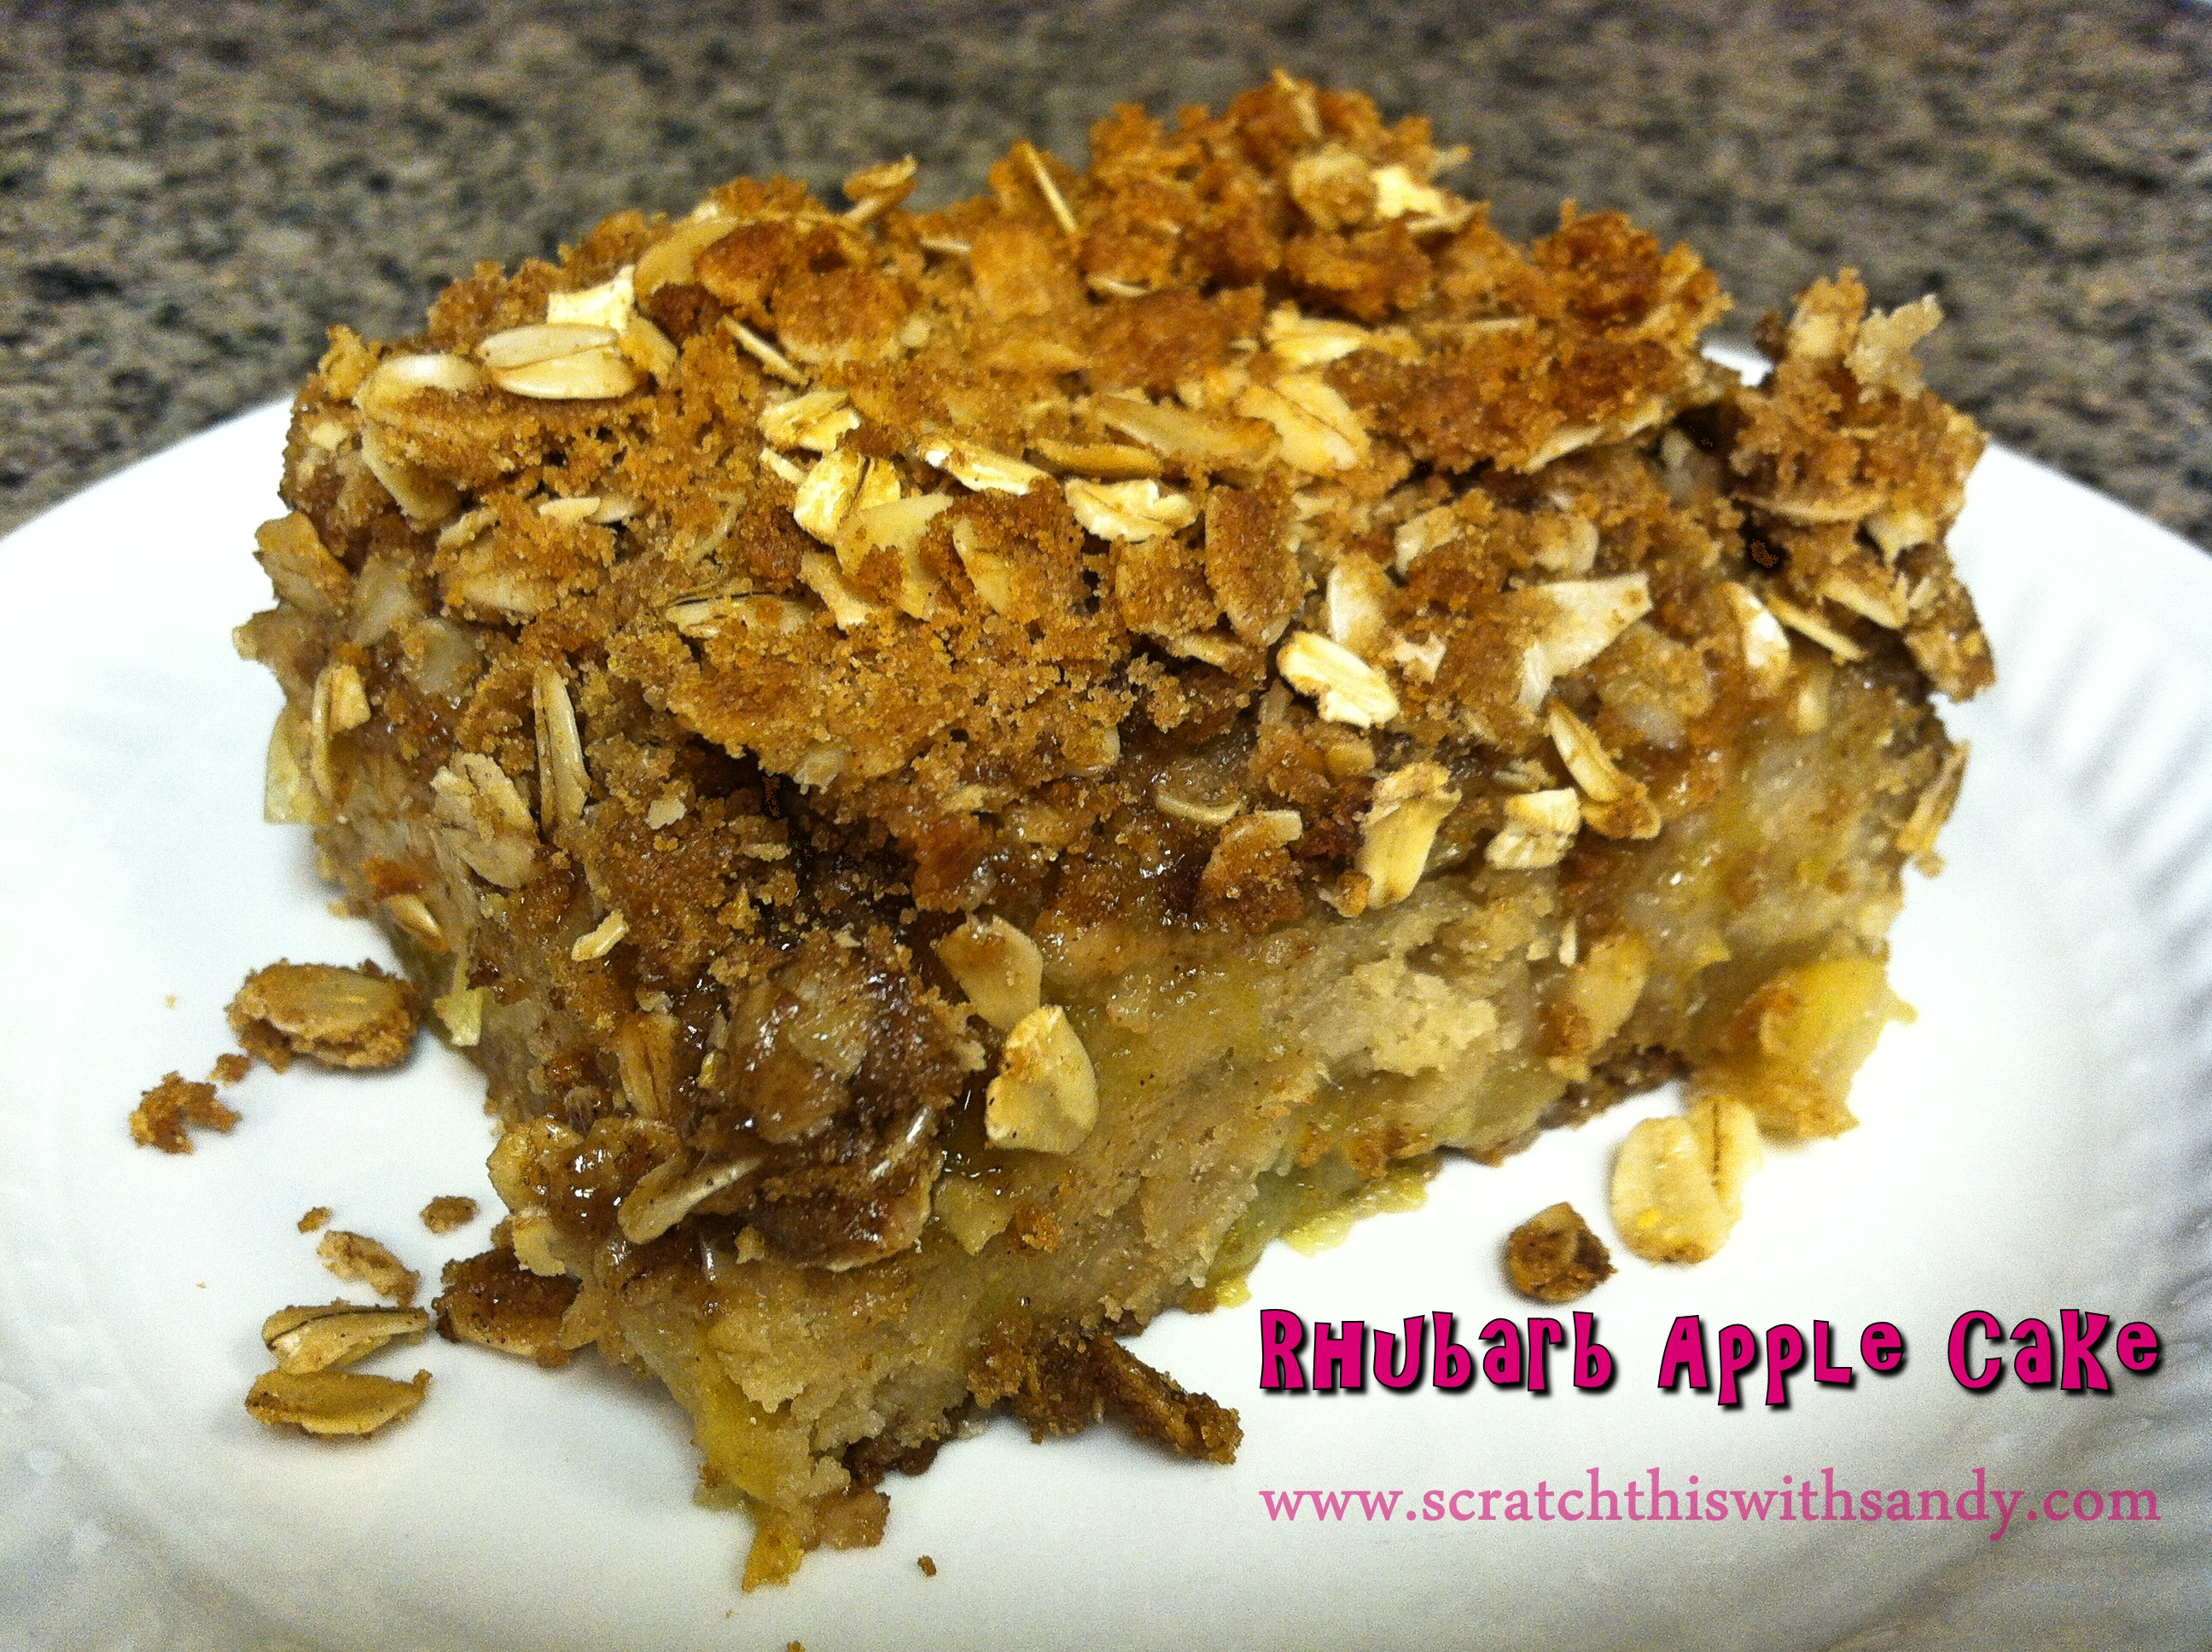 Rhubarb Apple Cake | Scratch This with Sandy